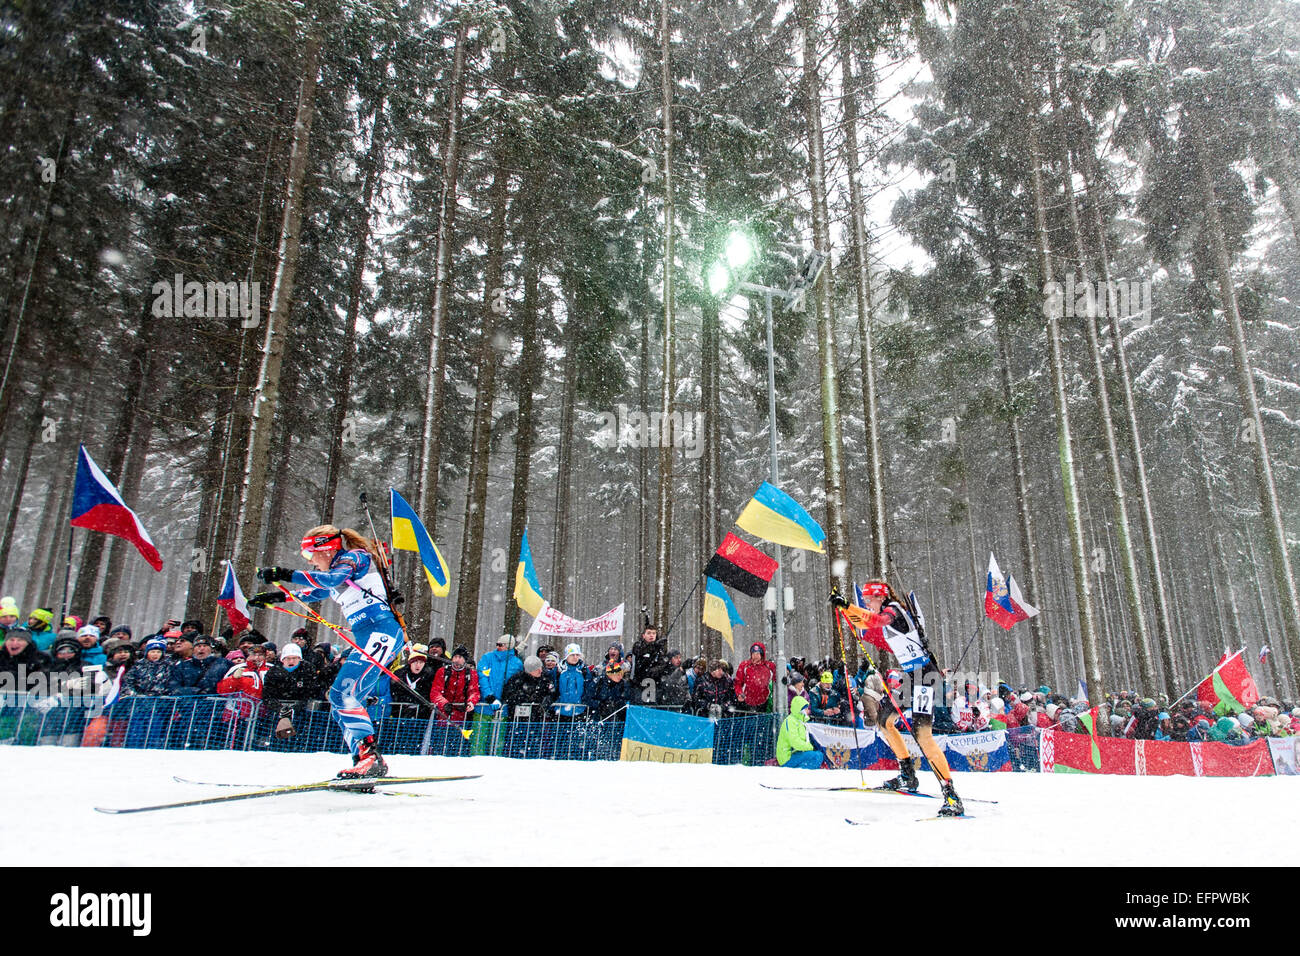 Czech racer Gabriela Soukalova (left) and Vanessa Hinz from Germany compete in the women's 10 km pursuit race - Stock Image